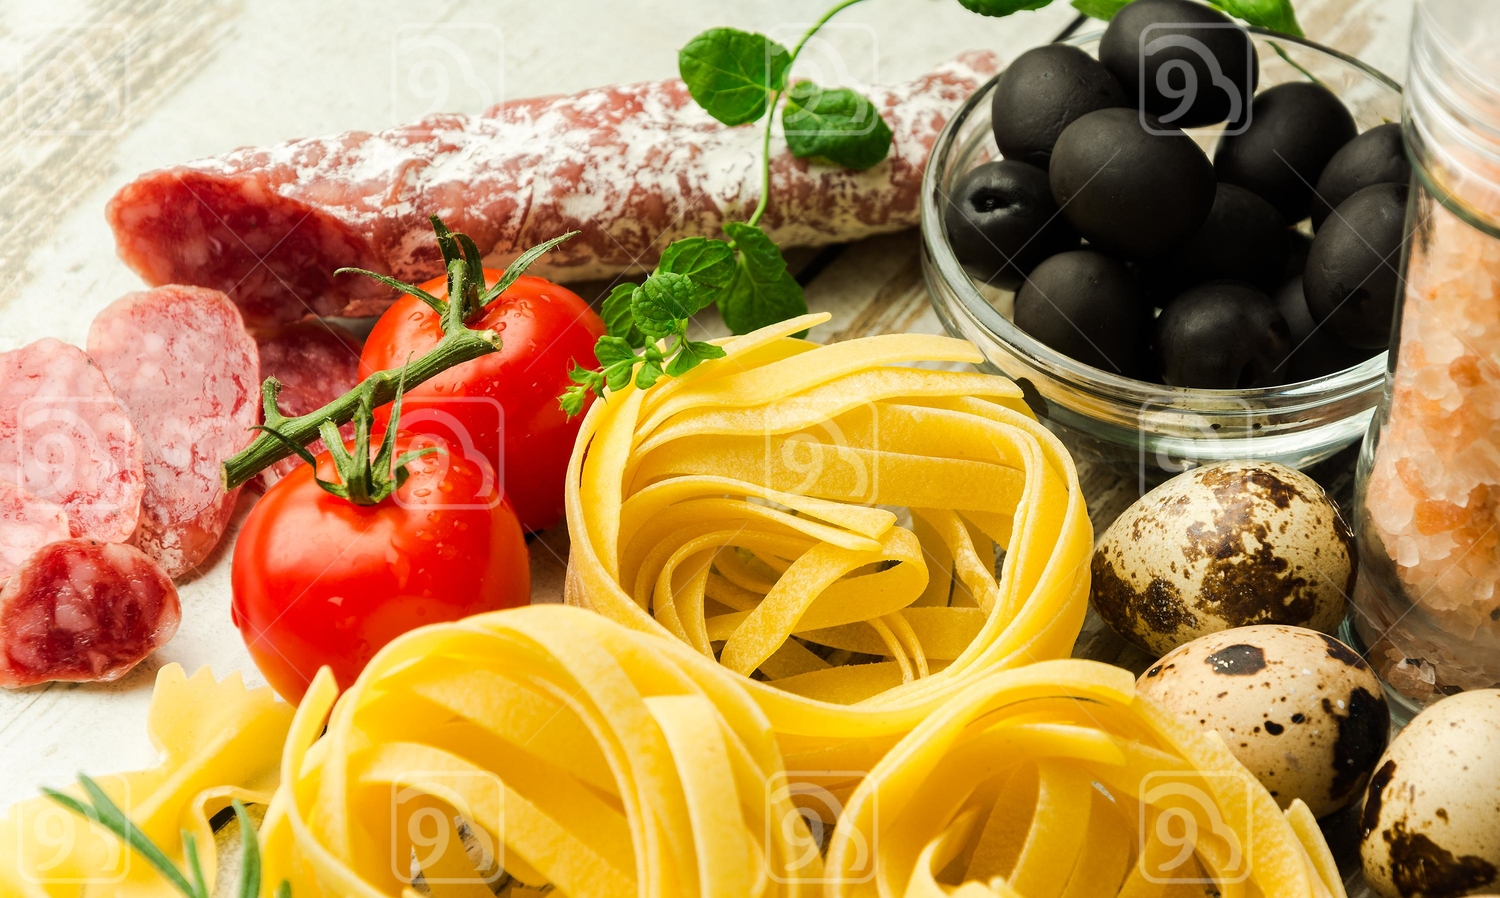 Italian food on a wooden table